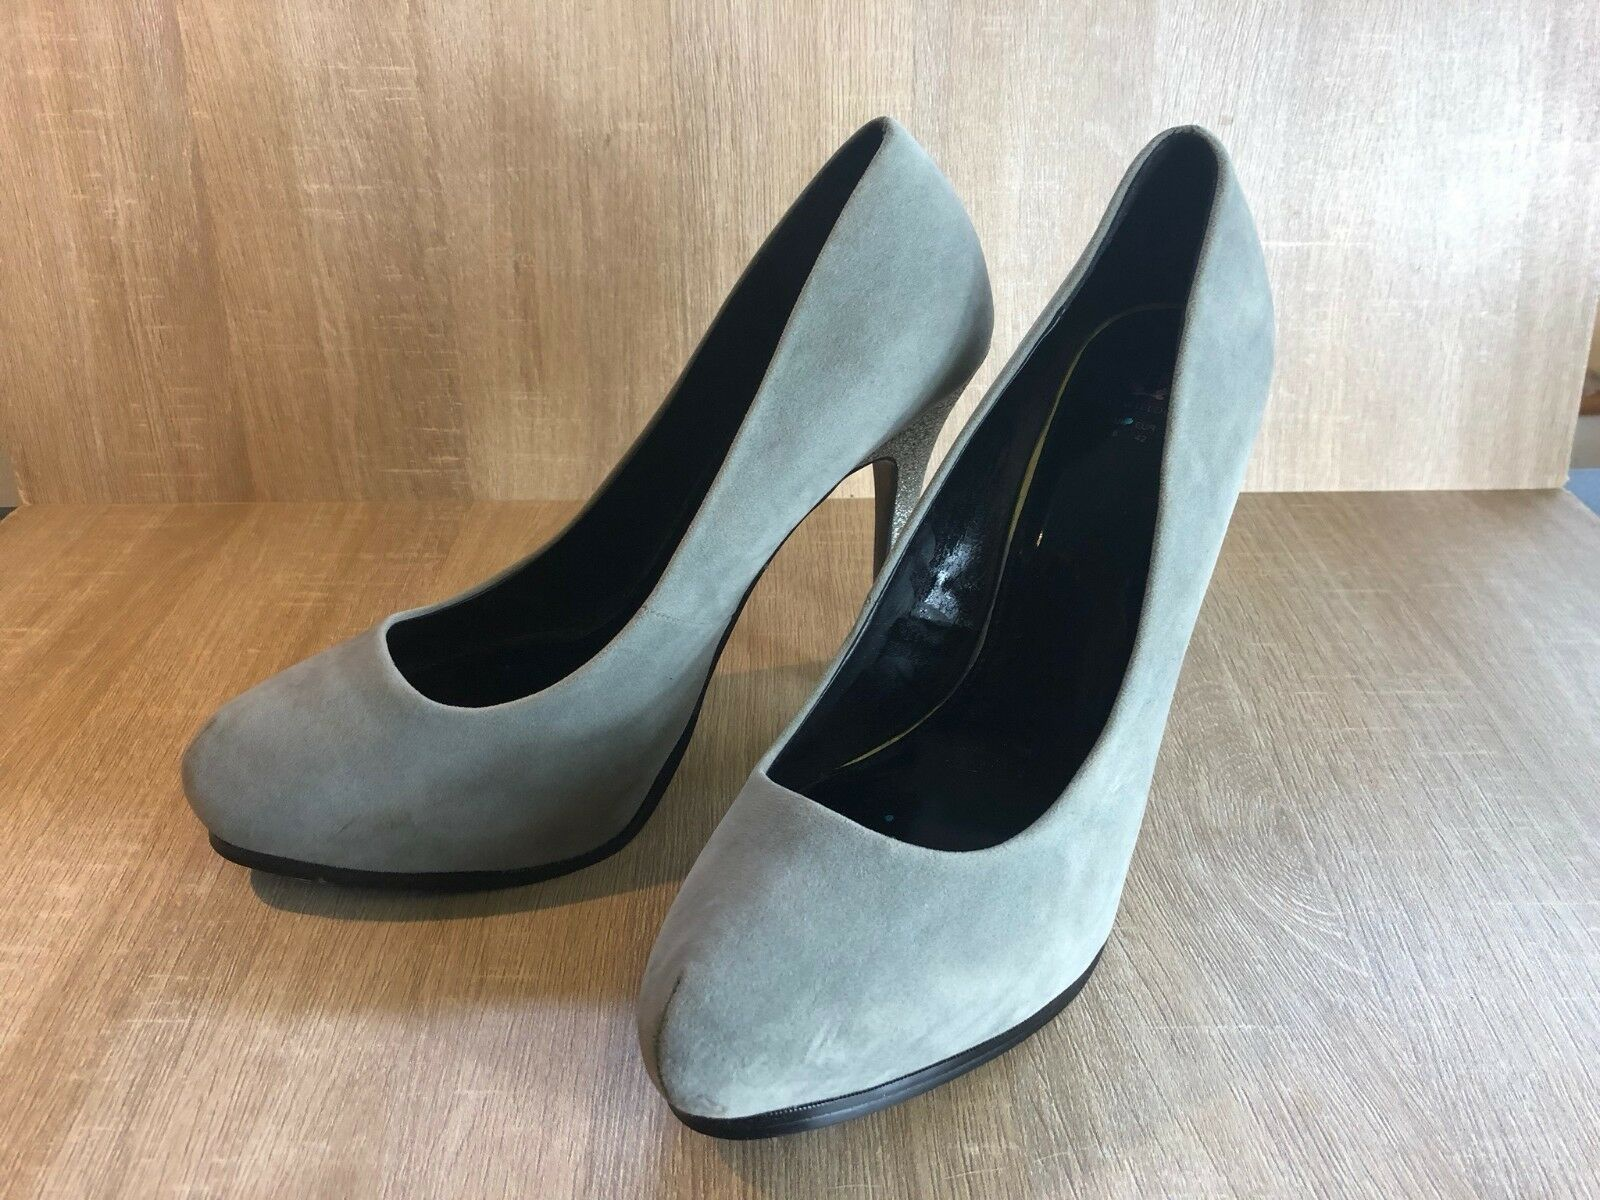 Holly Willoughby Sparkly High Stiletto Platform Grey Sparkly Willoughby Heels Suede Shoes 9af52c